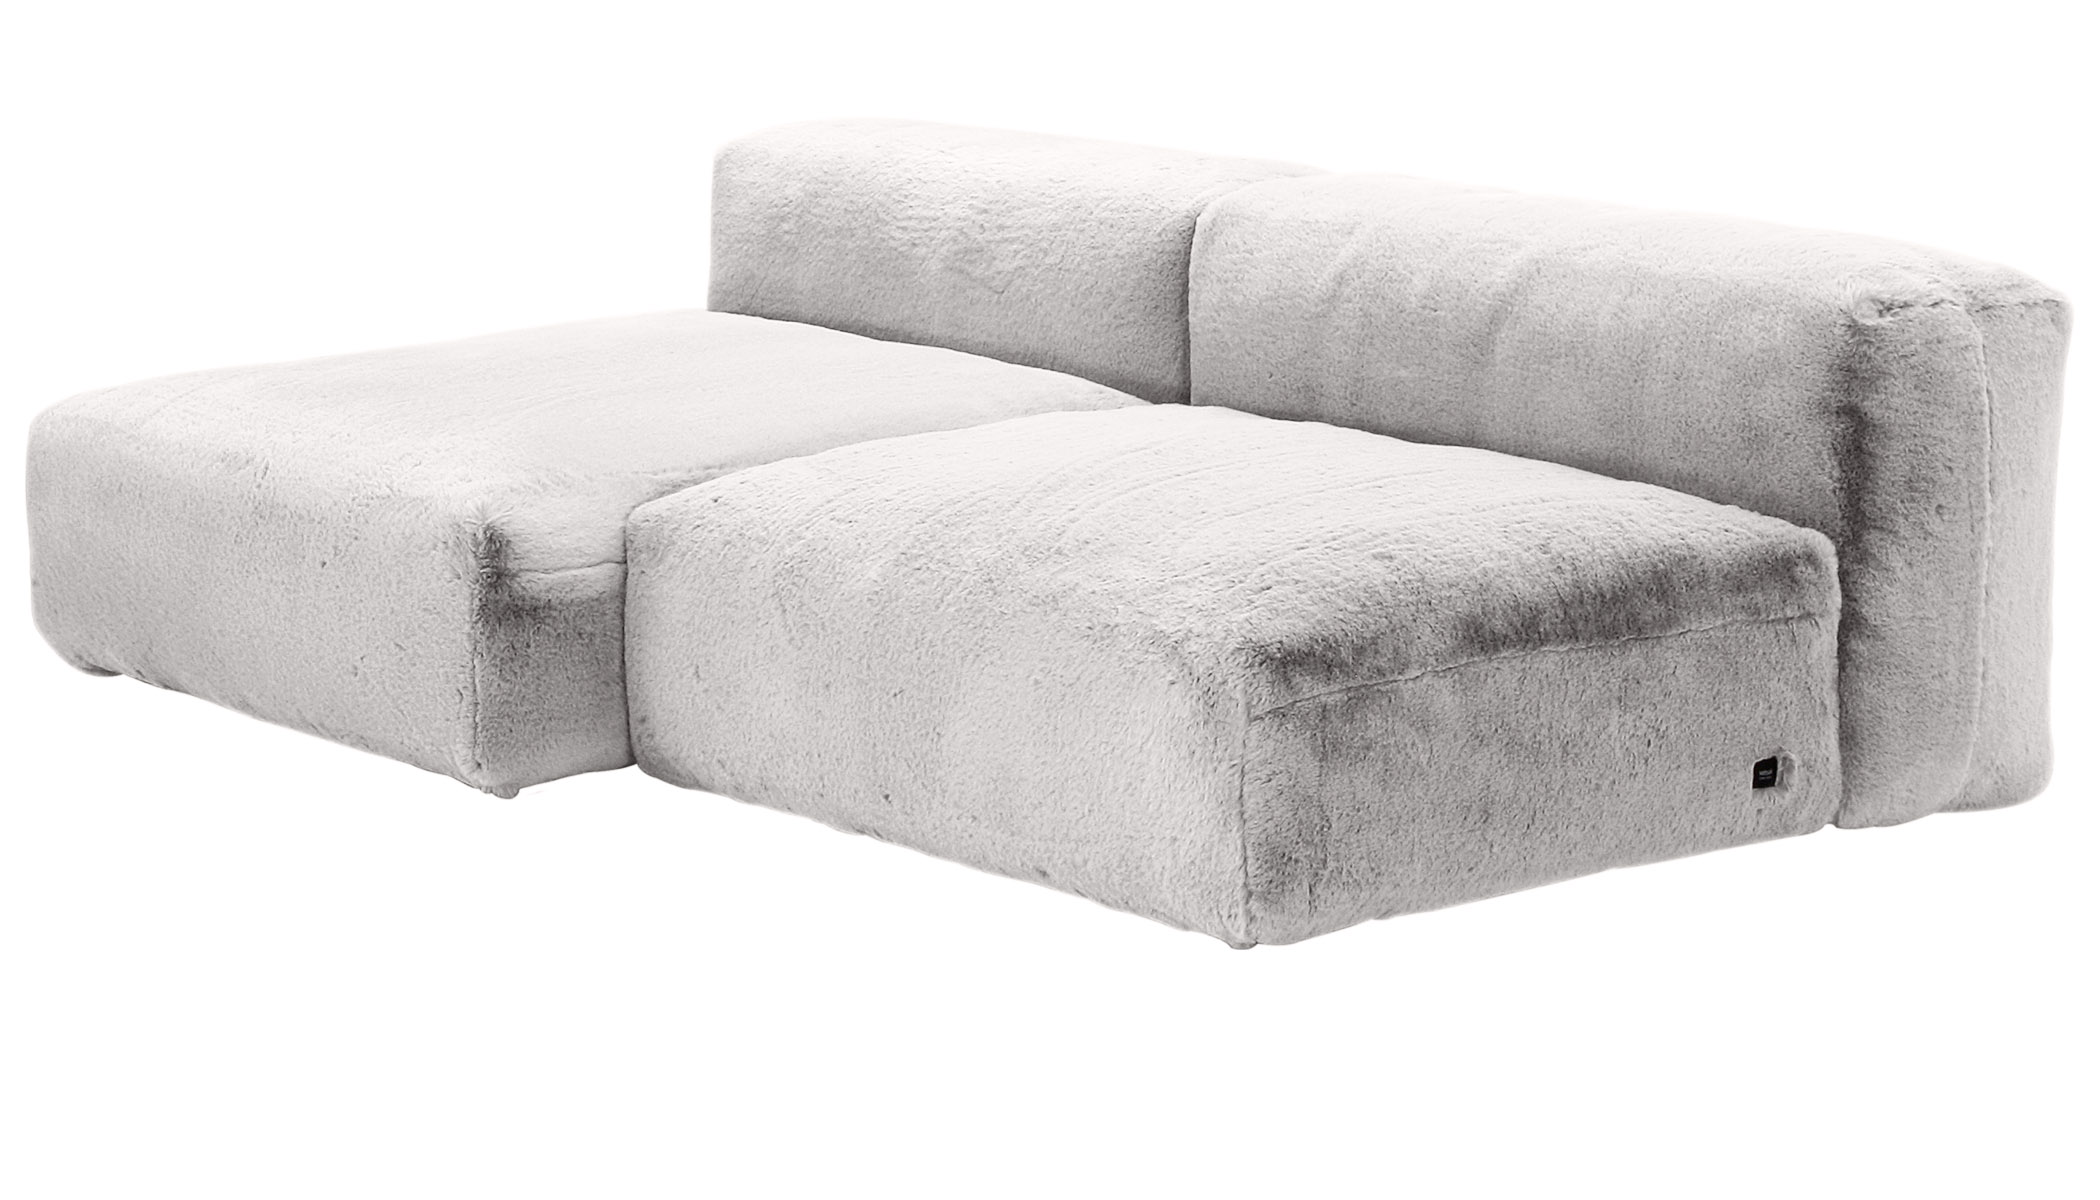 Sofa 1 Large 1 Medium 2 Side Faux Rabbit Fur grey